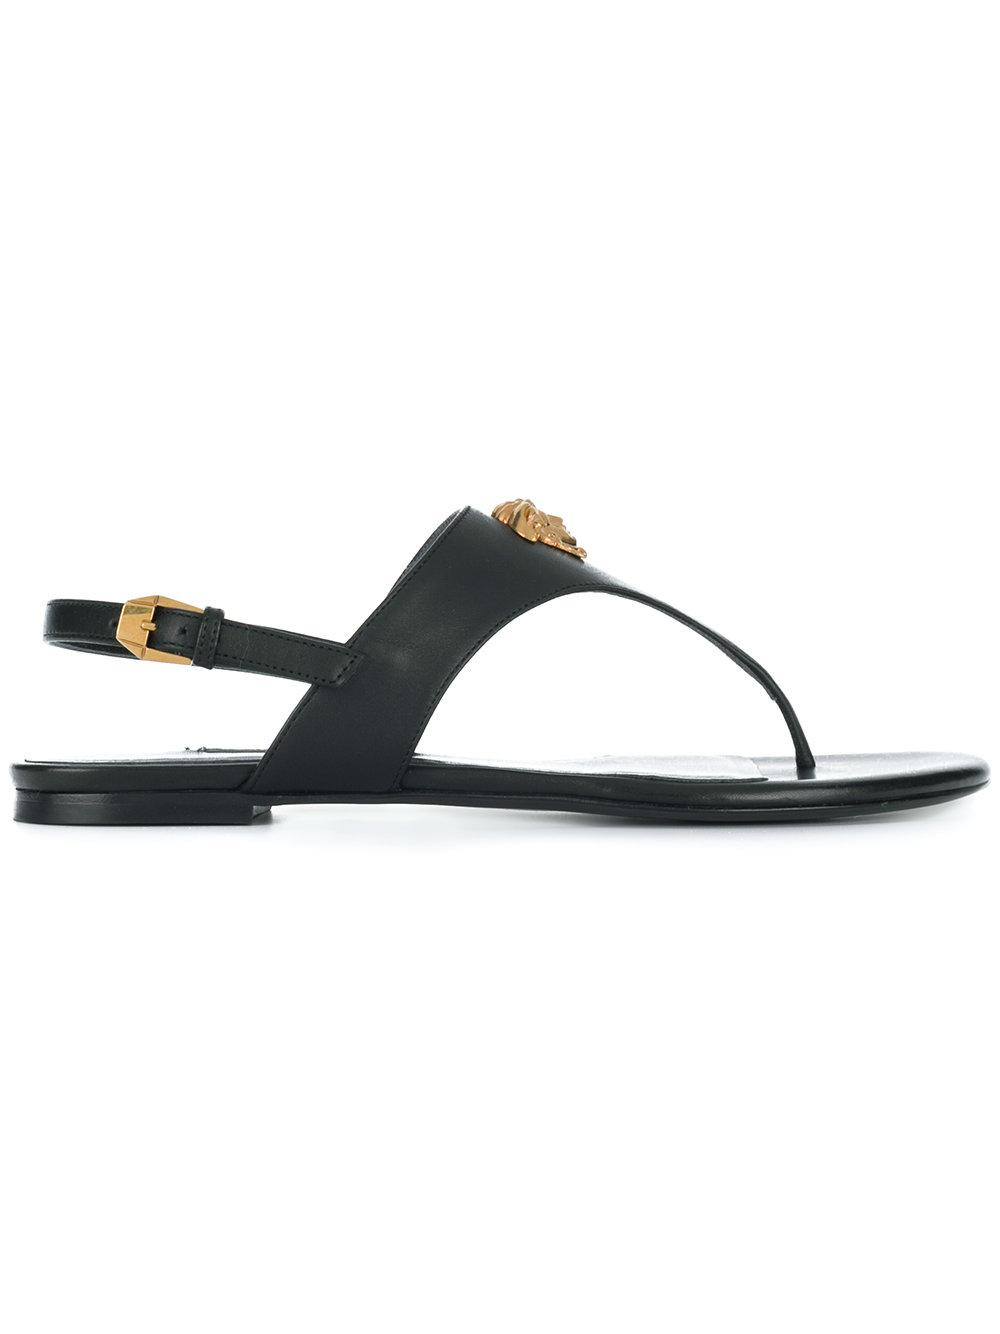 a88a756631c Versace Medusa Crystal Satin Sandals In Black